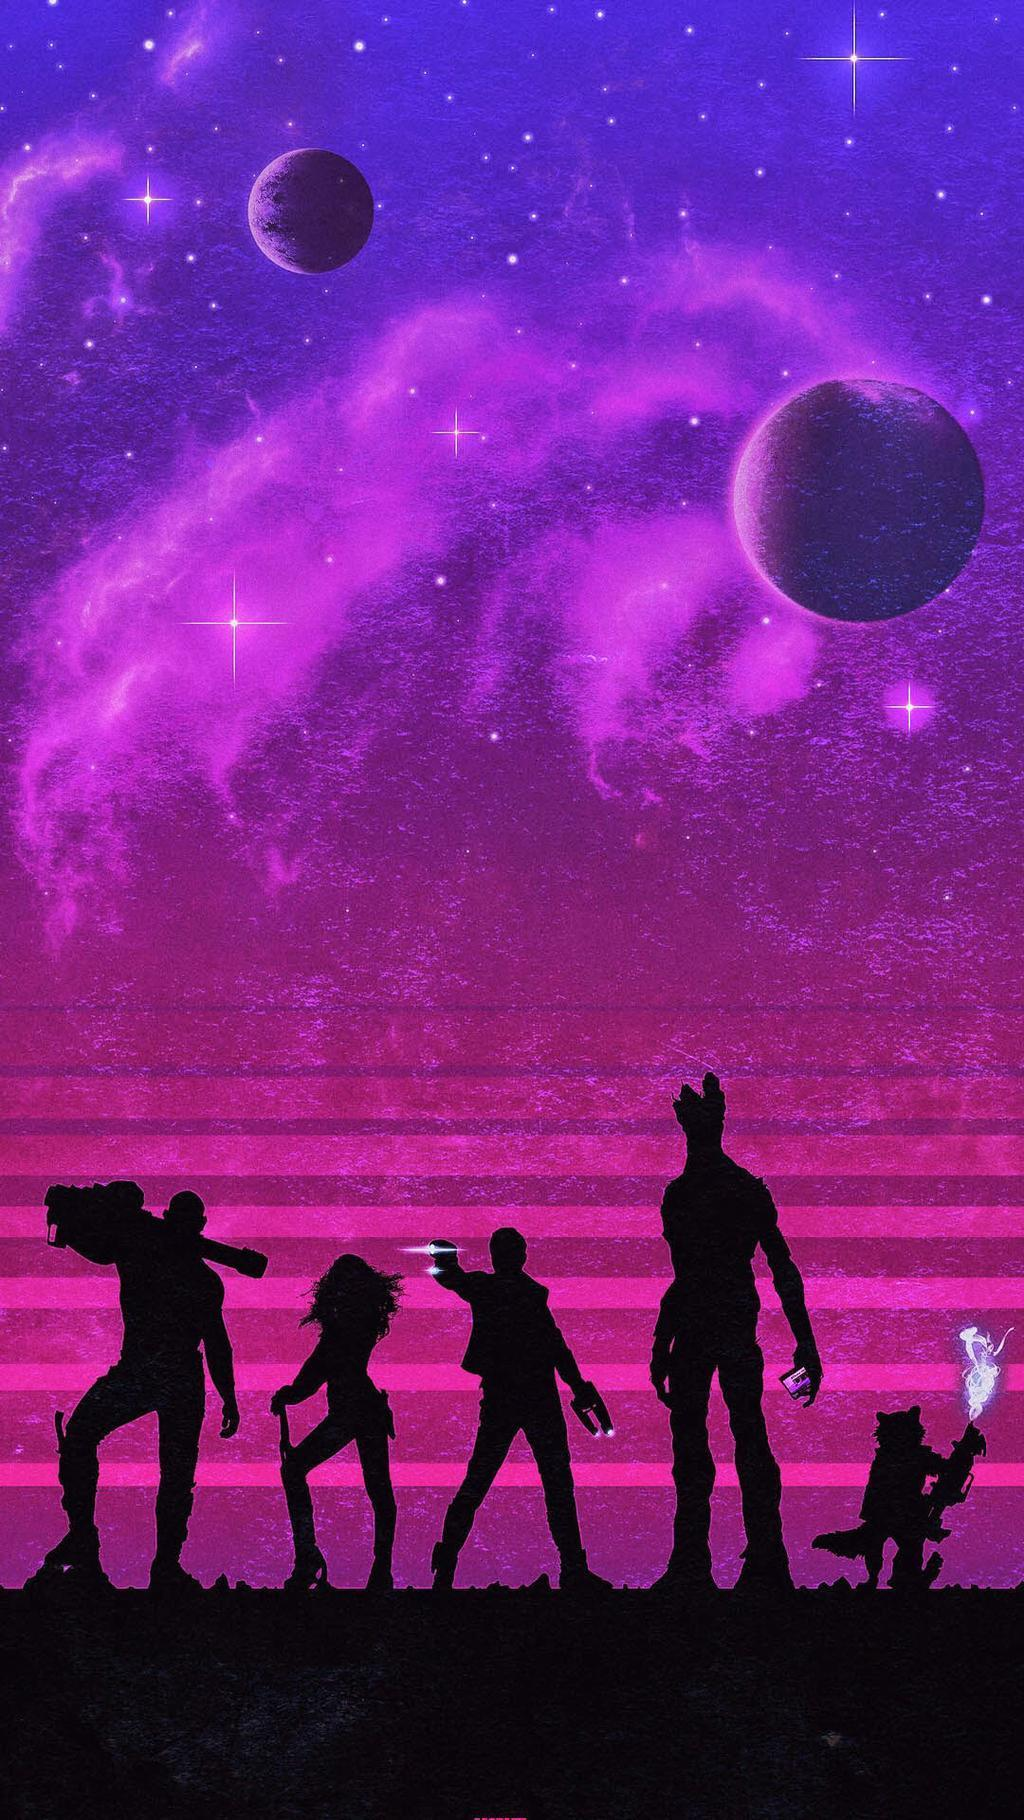 Guardians of the Galaxy wallpapers for iPhone and iPad